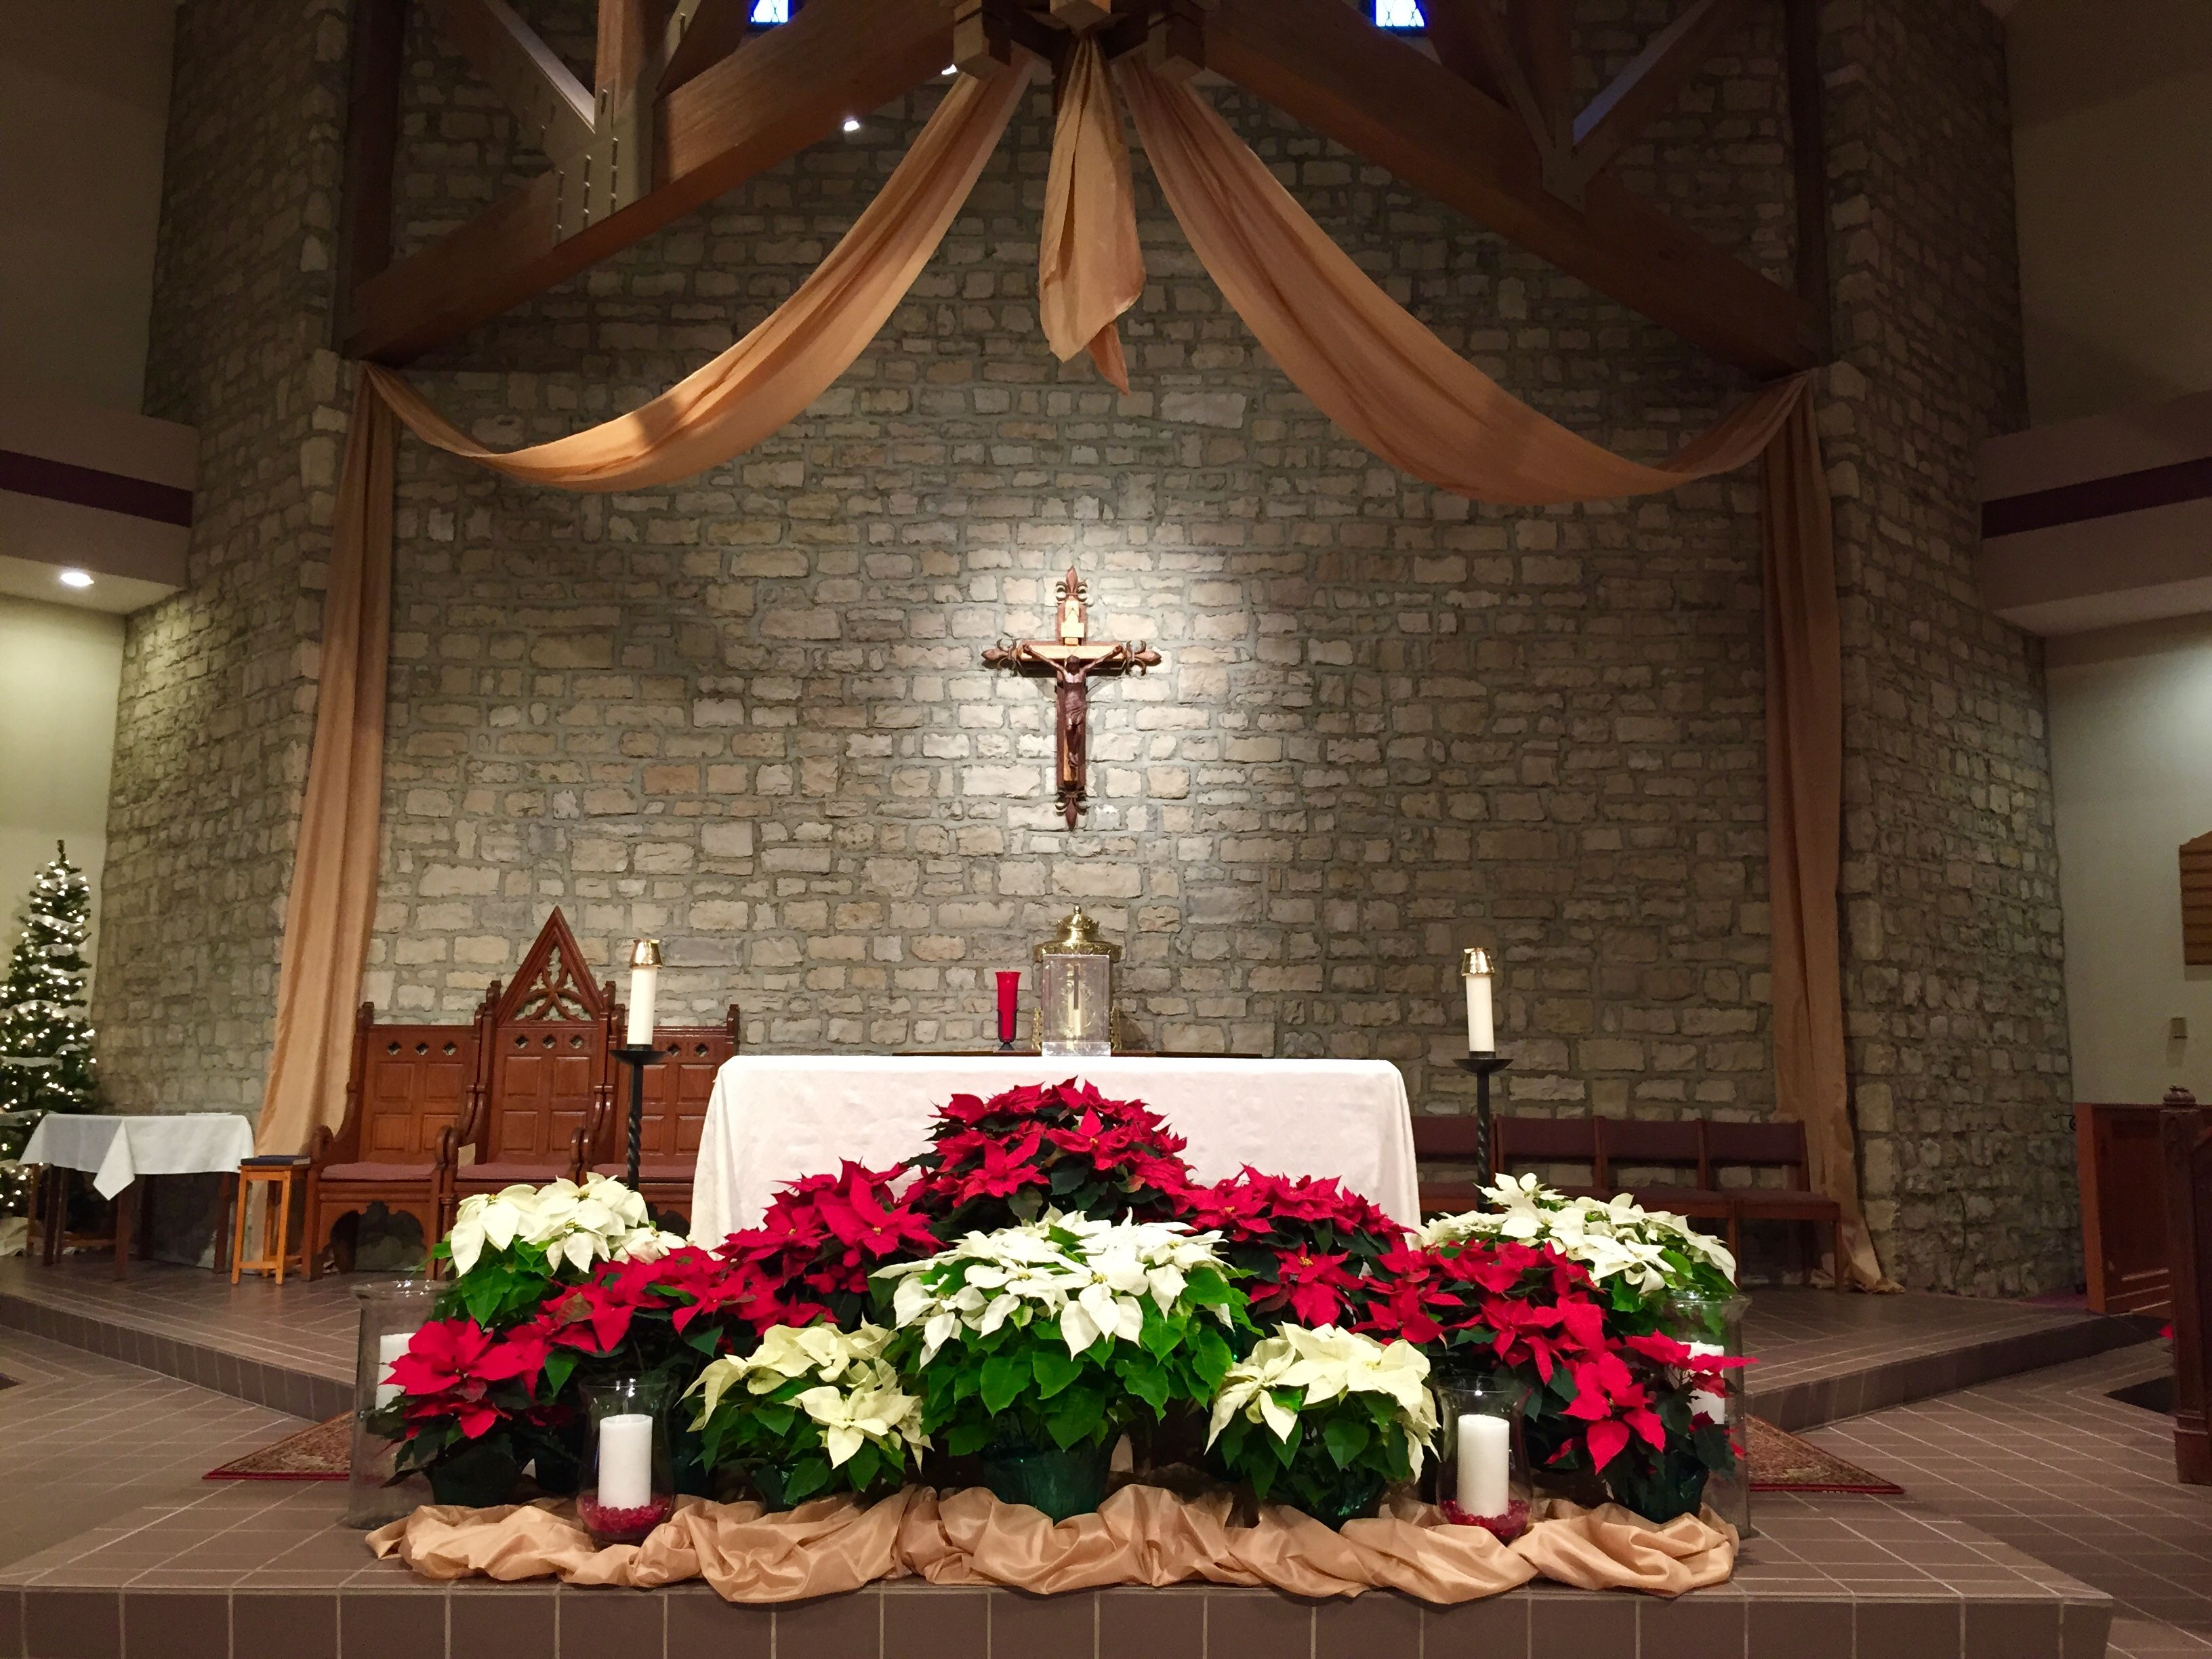 st joan of arc catholic church powell oh christmas decorations 2014 - Christmas Church Decorations